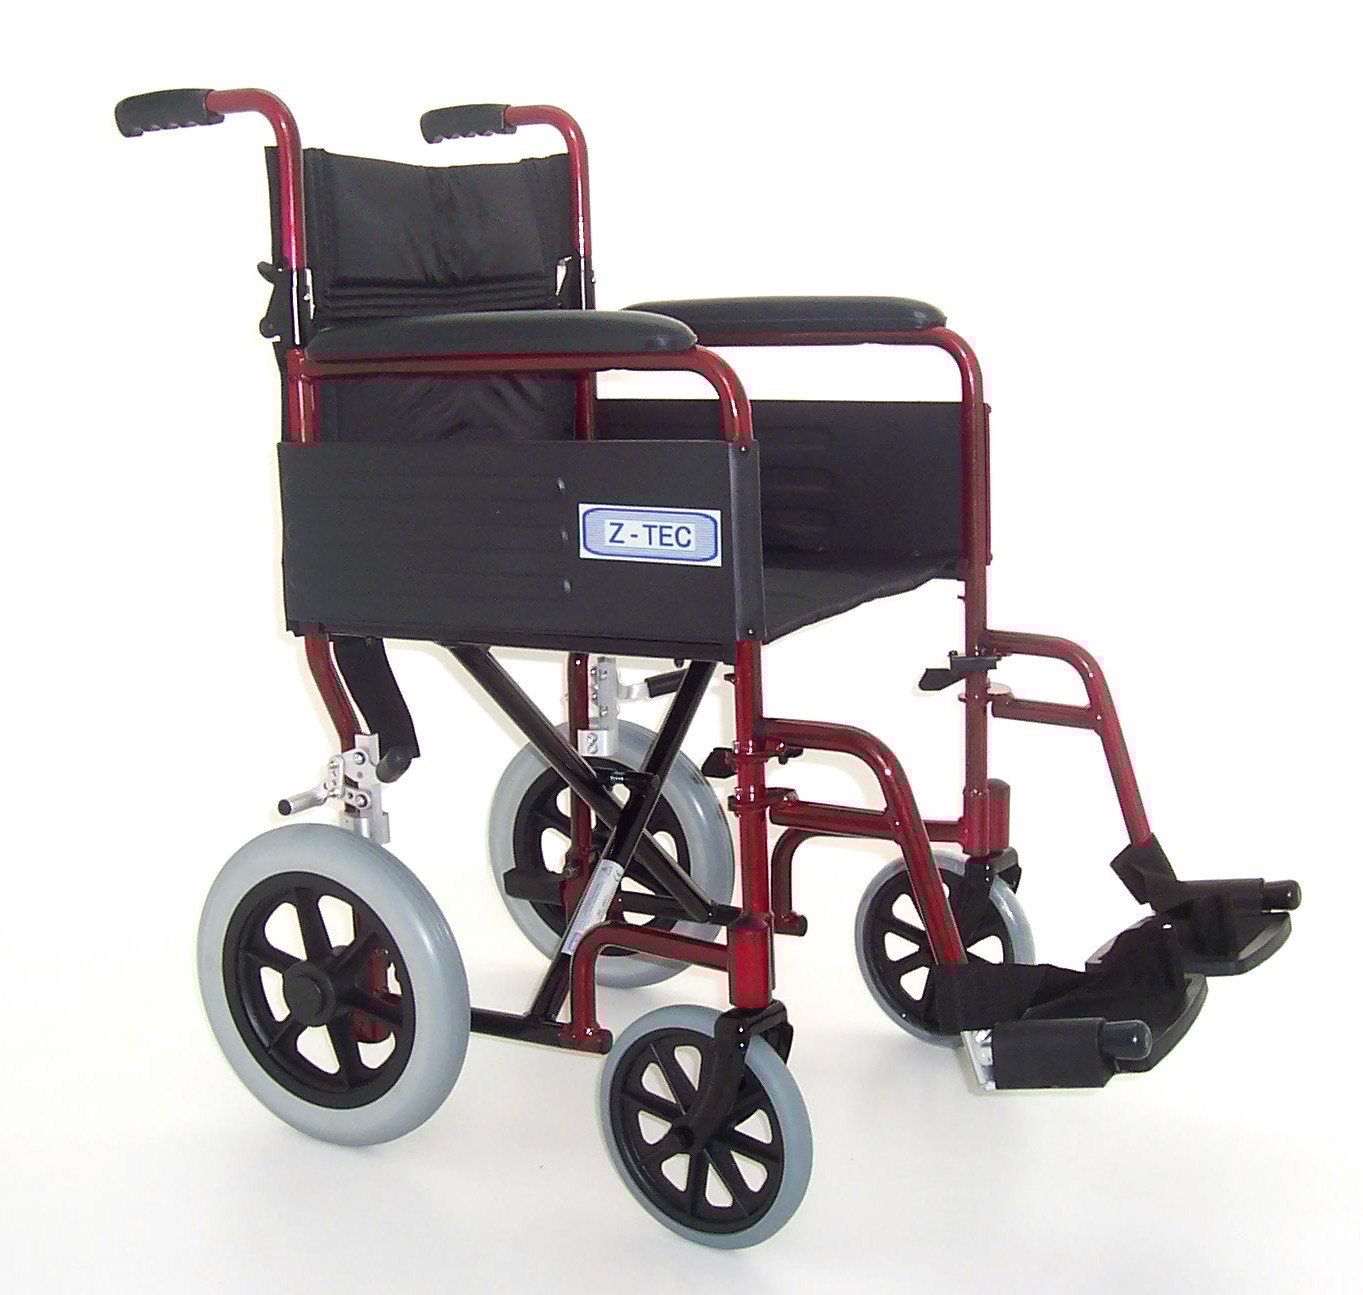 Lightweight Folding Transit Wheelchair Z-Tech Red